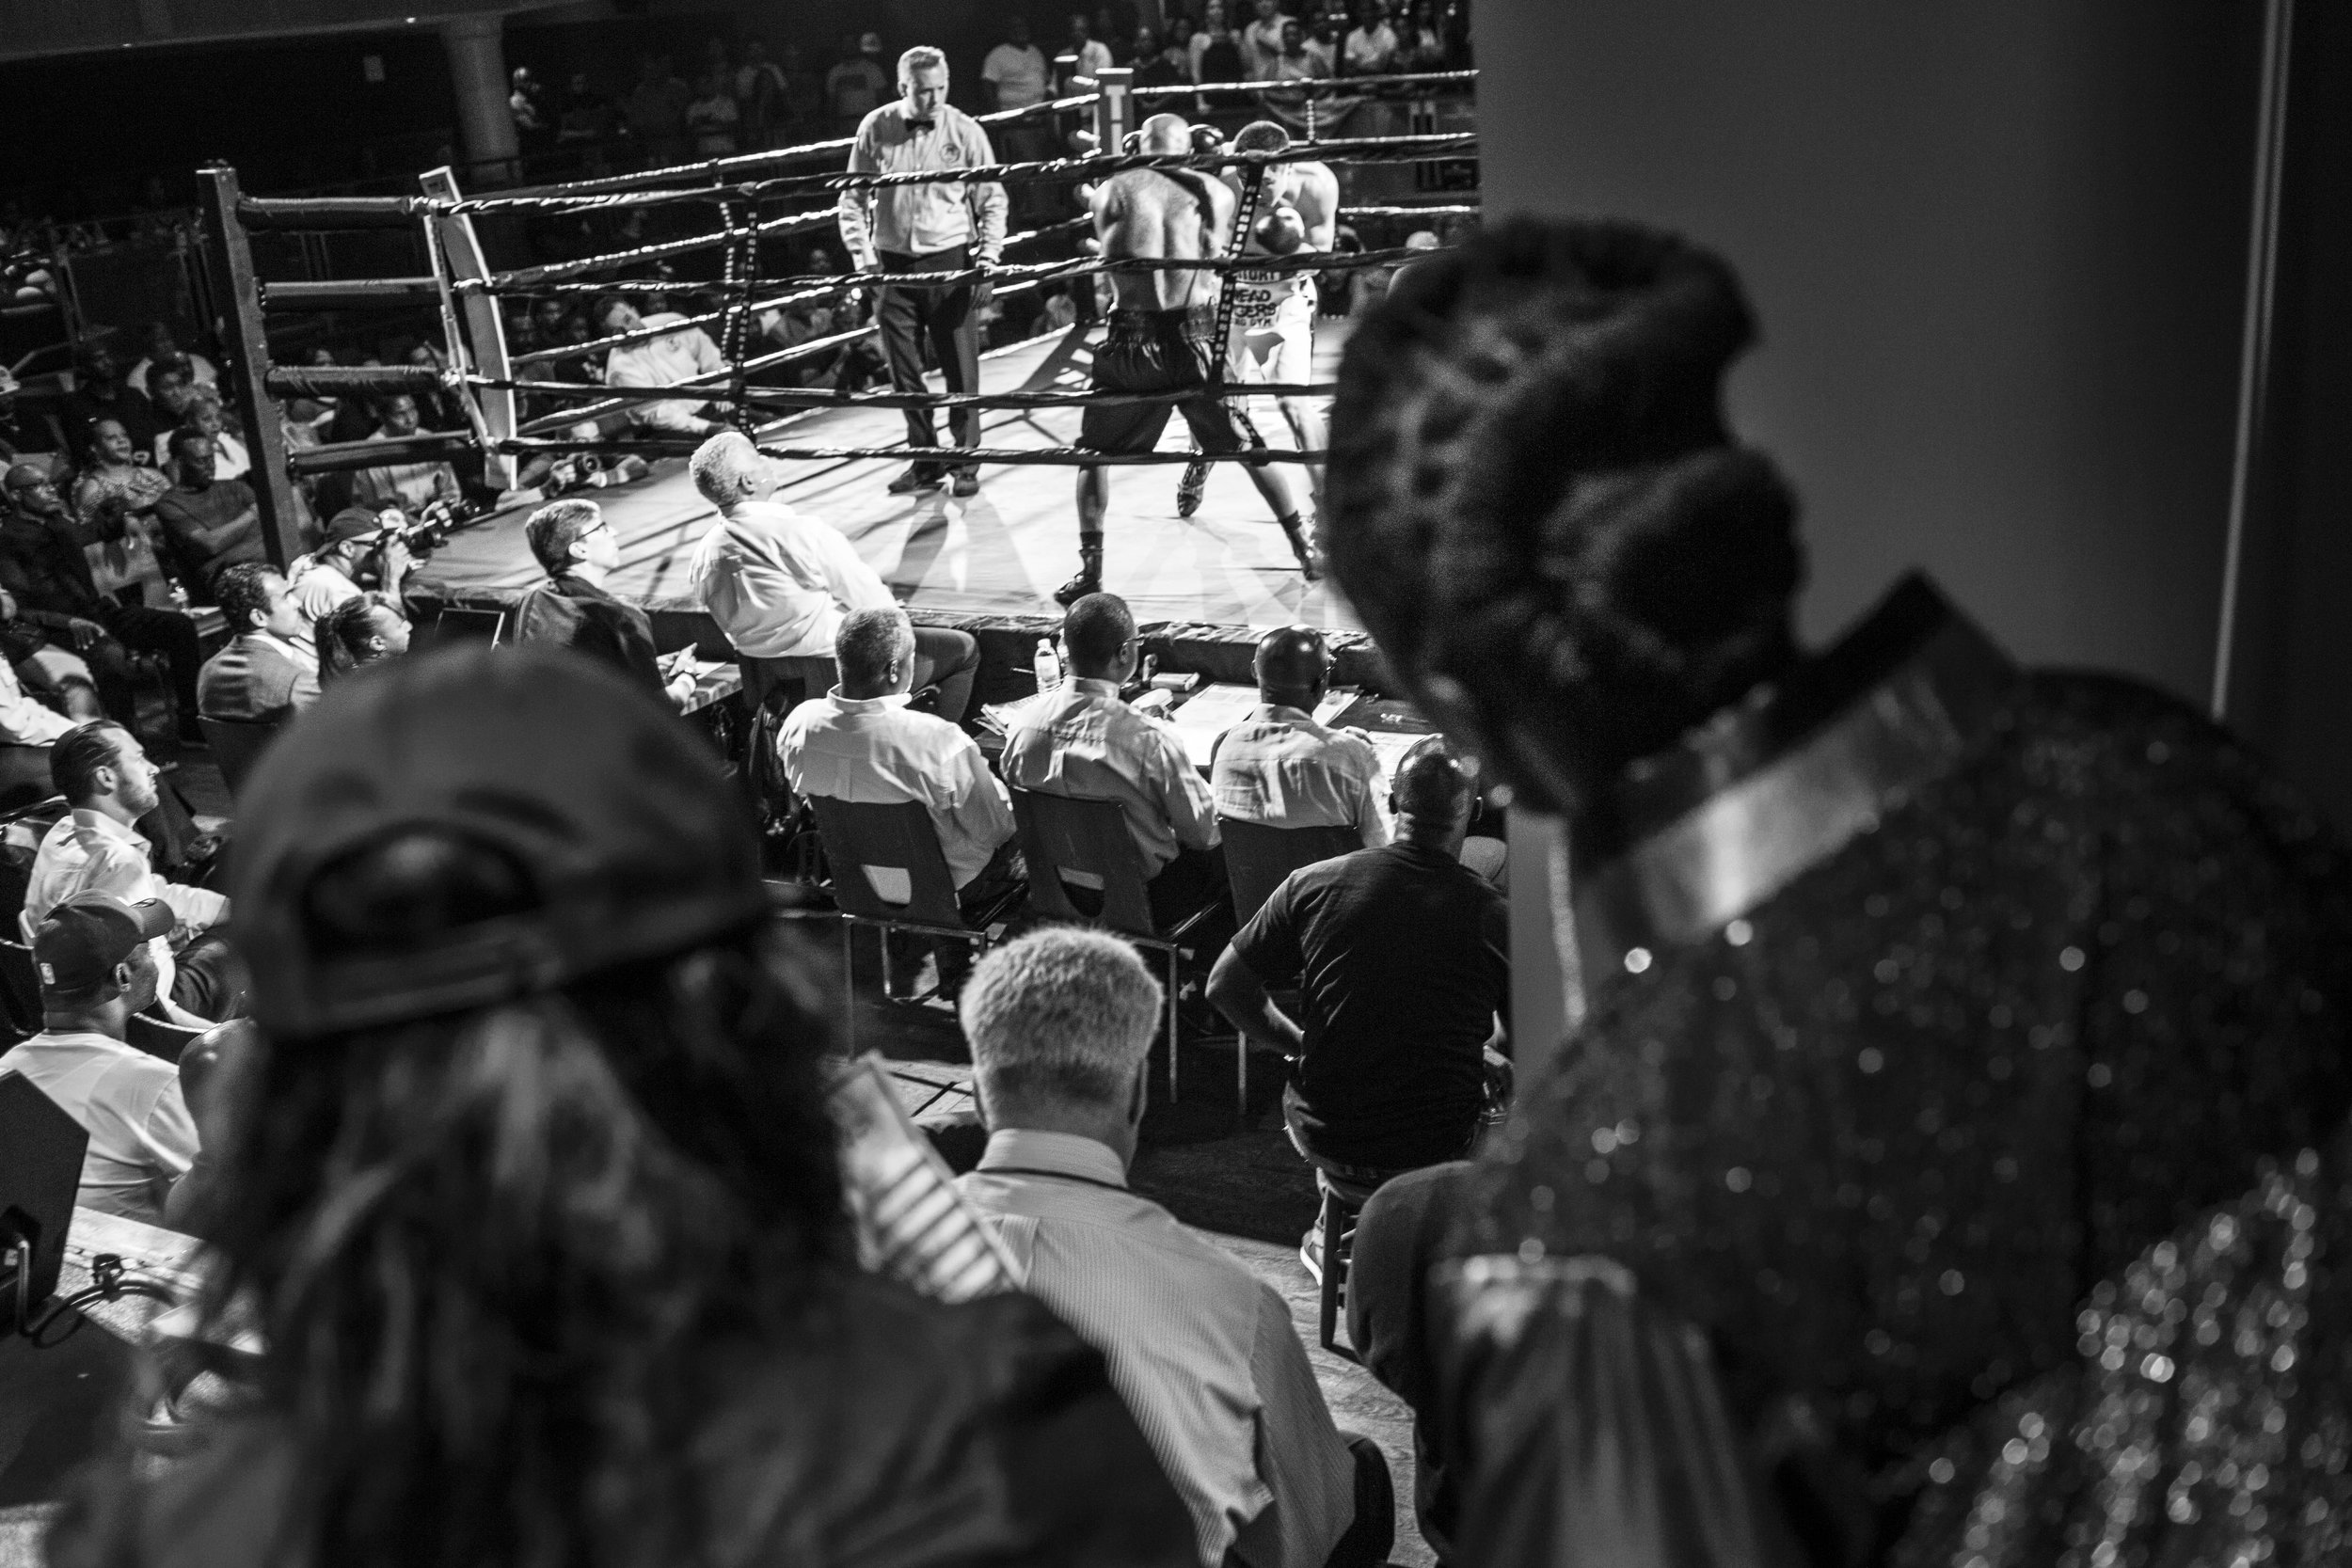 Tiara looks on as her teammate fights at the Howard Theatre in downtown DC, the same night she had her second knockout win as a pro fighter.